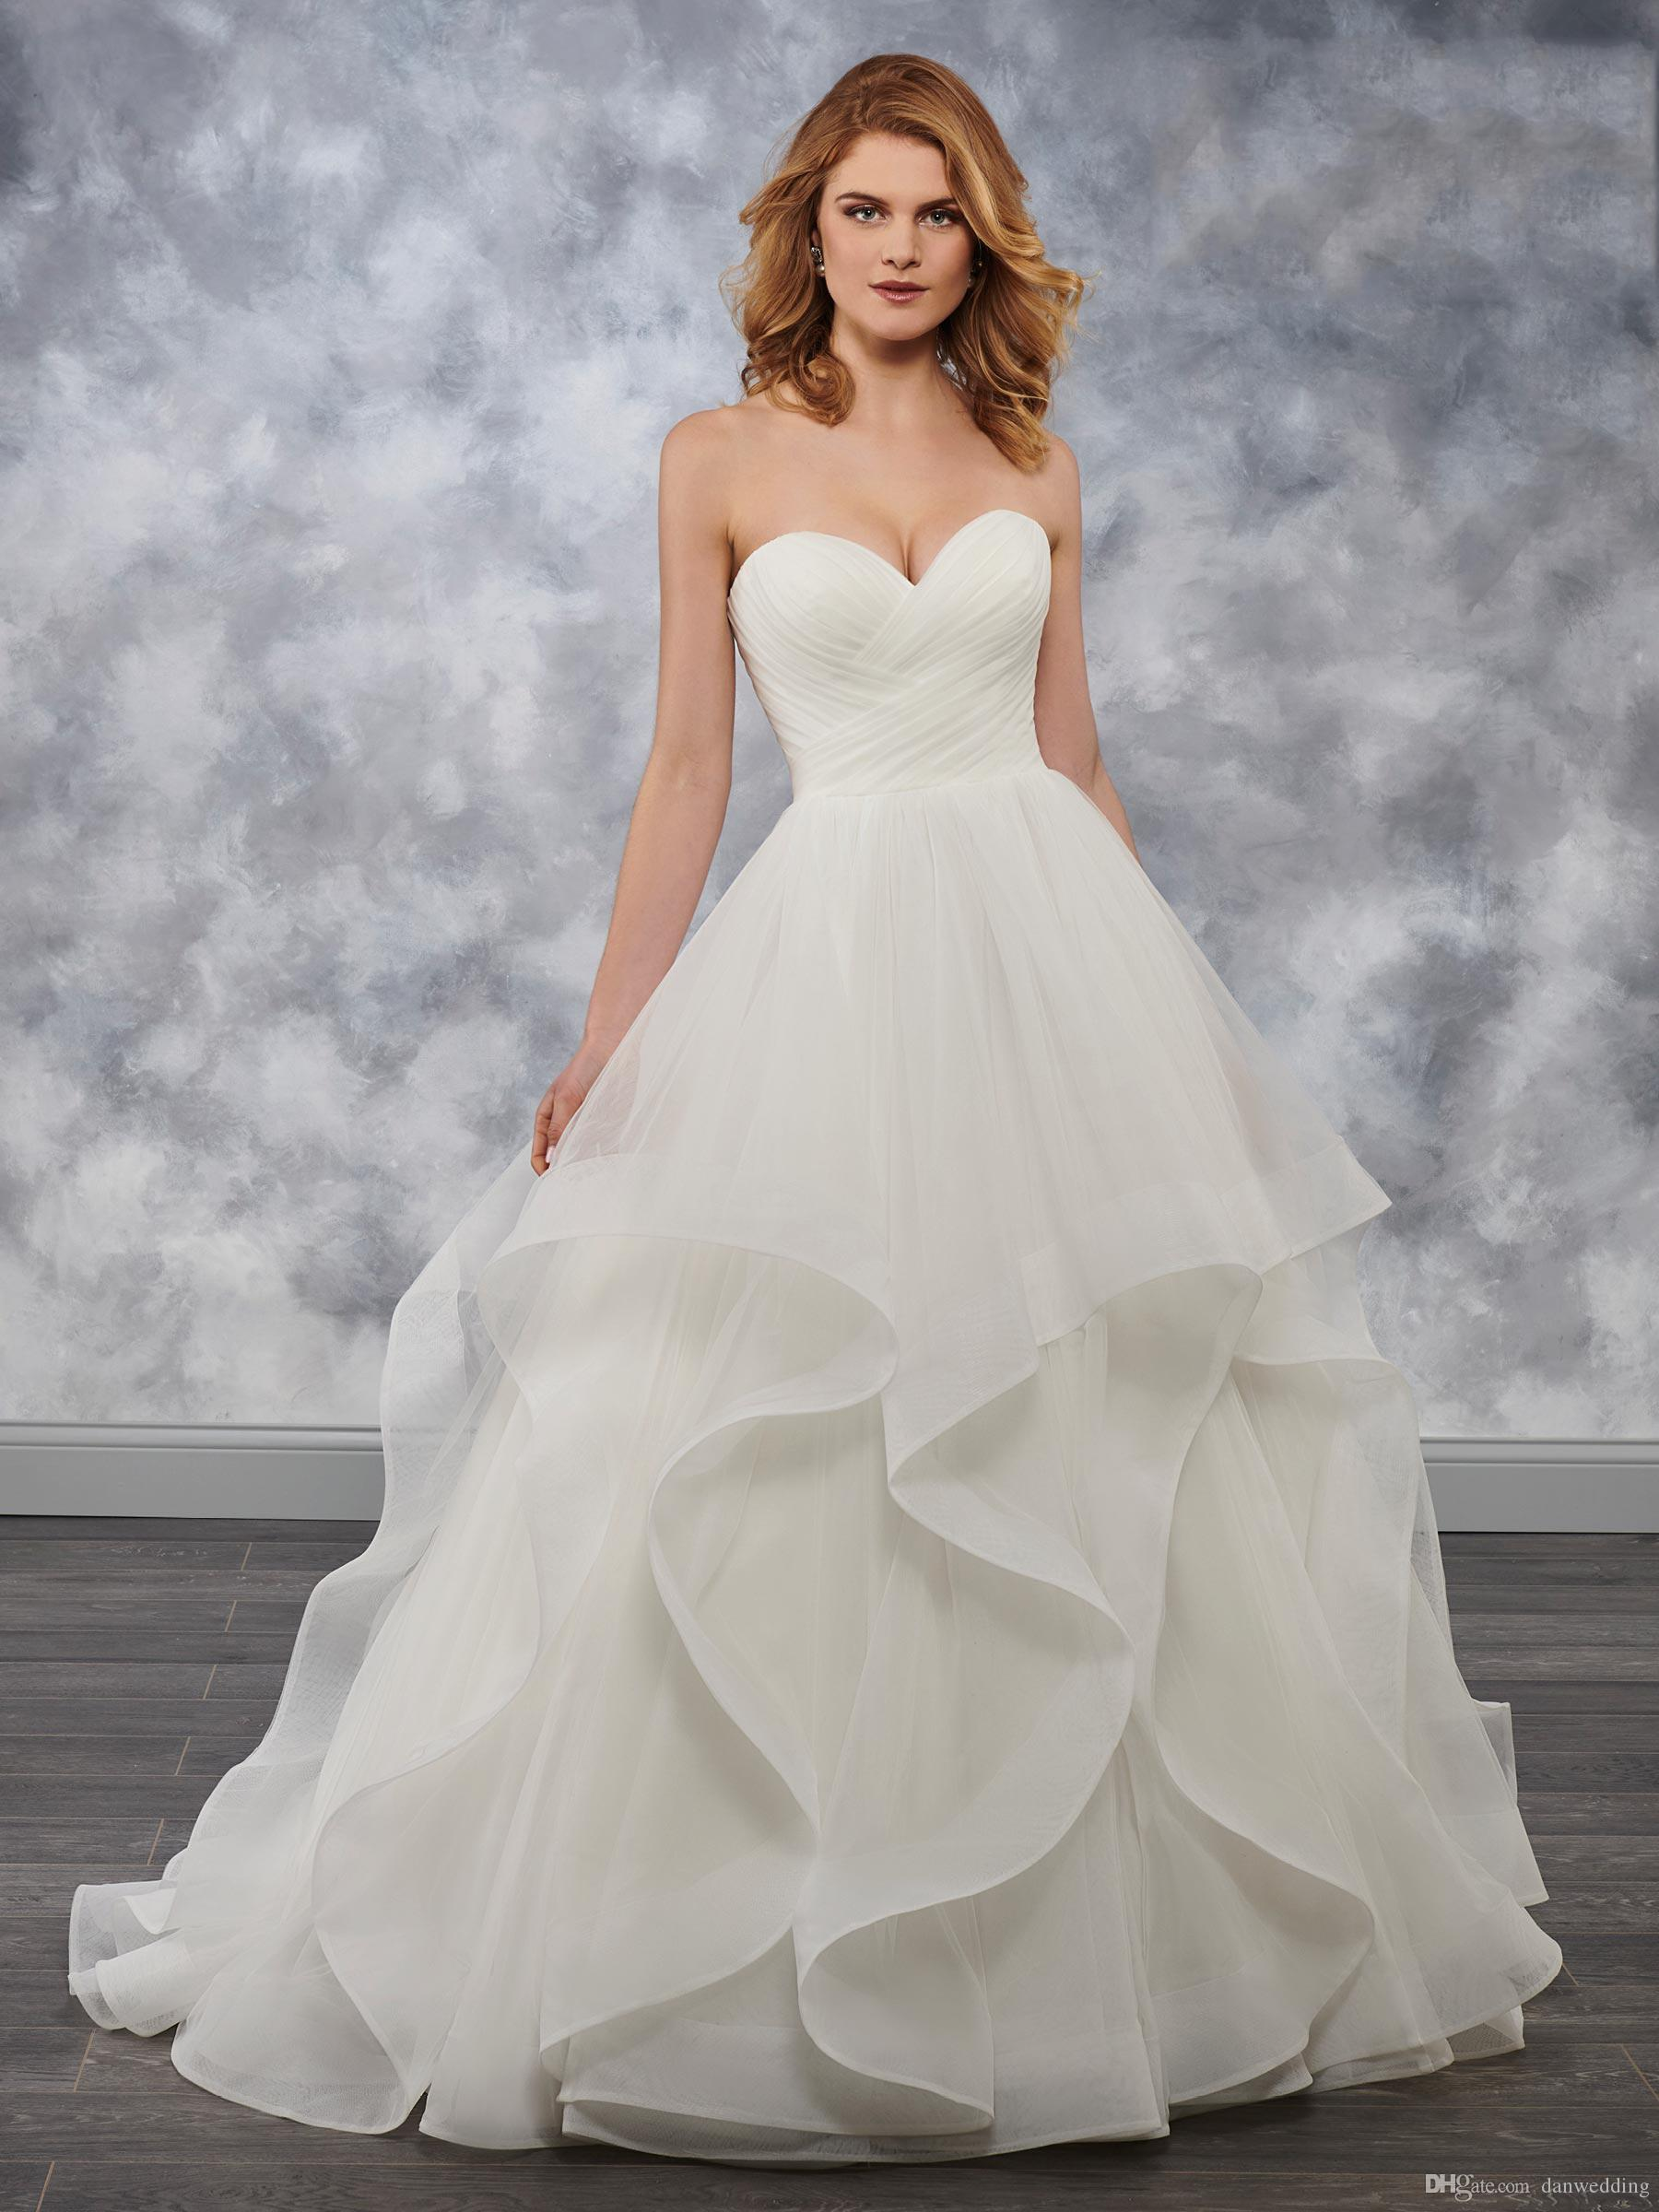 Sobriety Ivoire Sweetheart Tulle Volants A-Line Robes De Mariée Robes De Mariée Robes De Mariage Robes de mariage Taille personnalisée 2-16 kf1014143